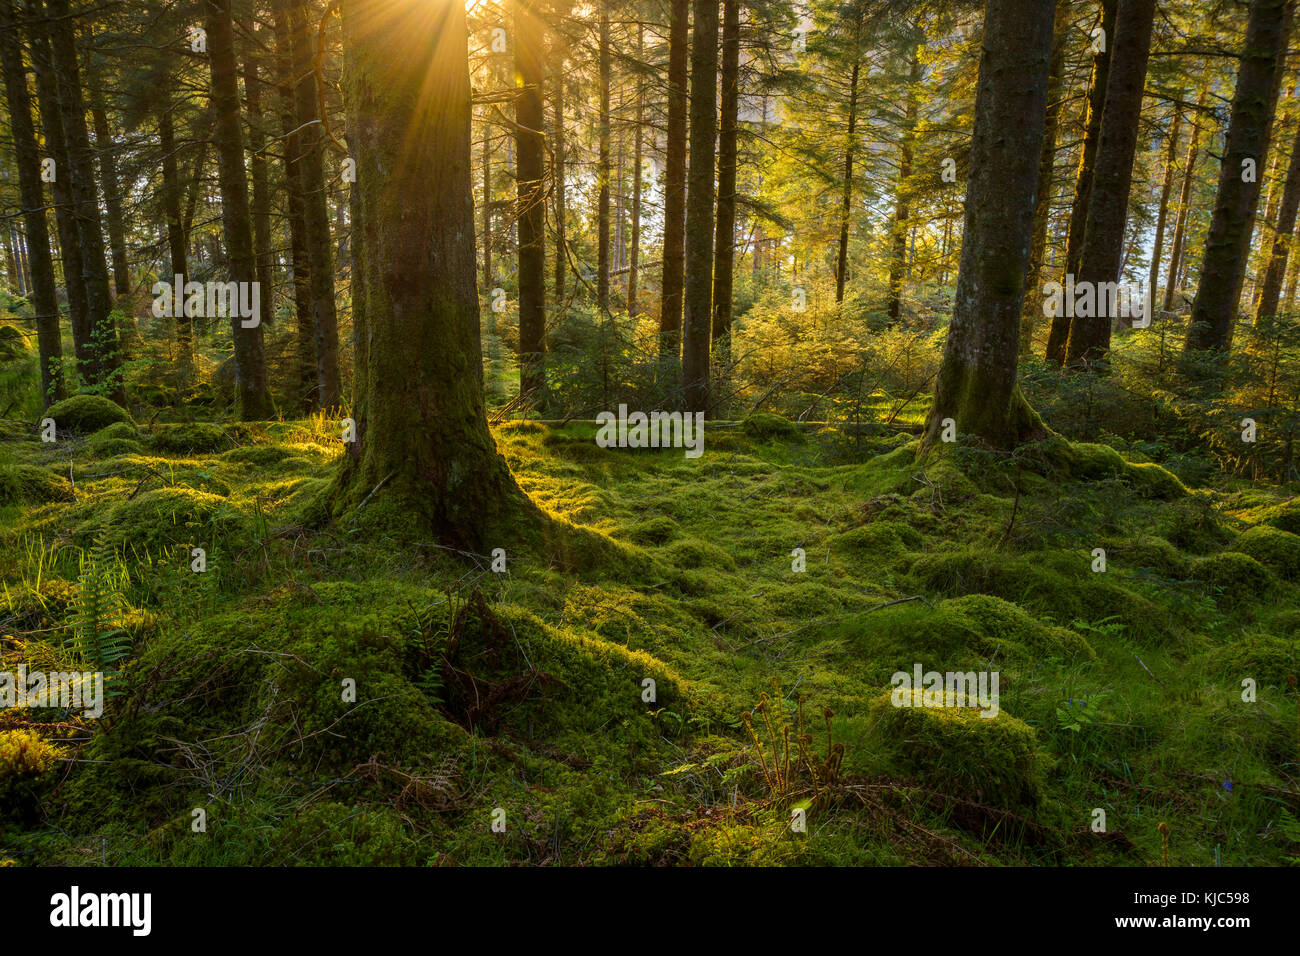 Moss covered ground and tree trunks in a conifer forest at sunset at Loch Awe in Argyll and Bute, Scotland - Stock Image